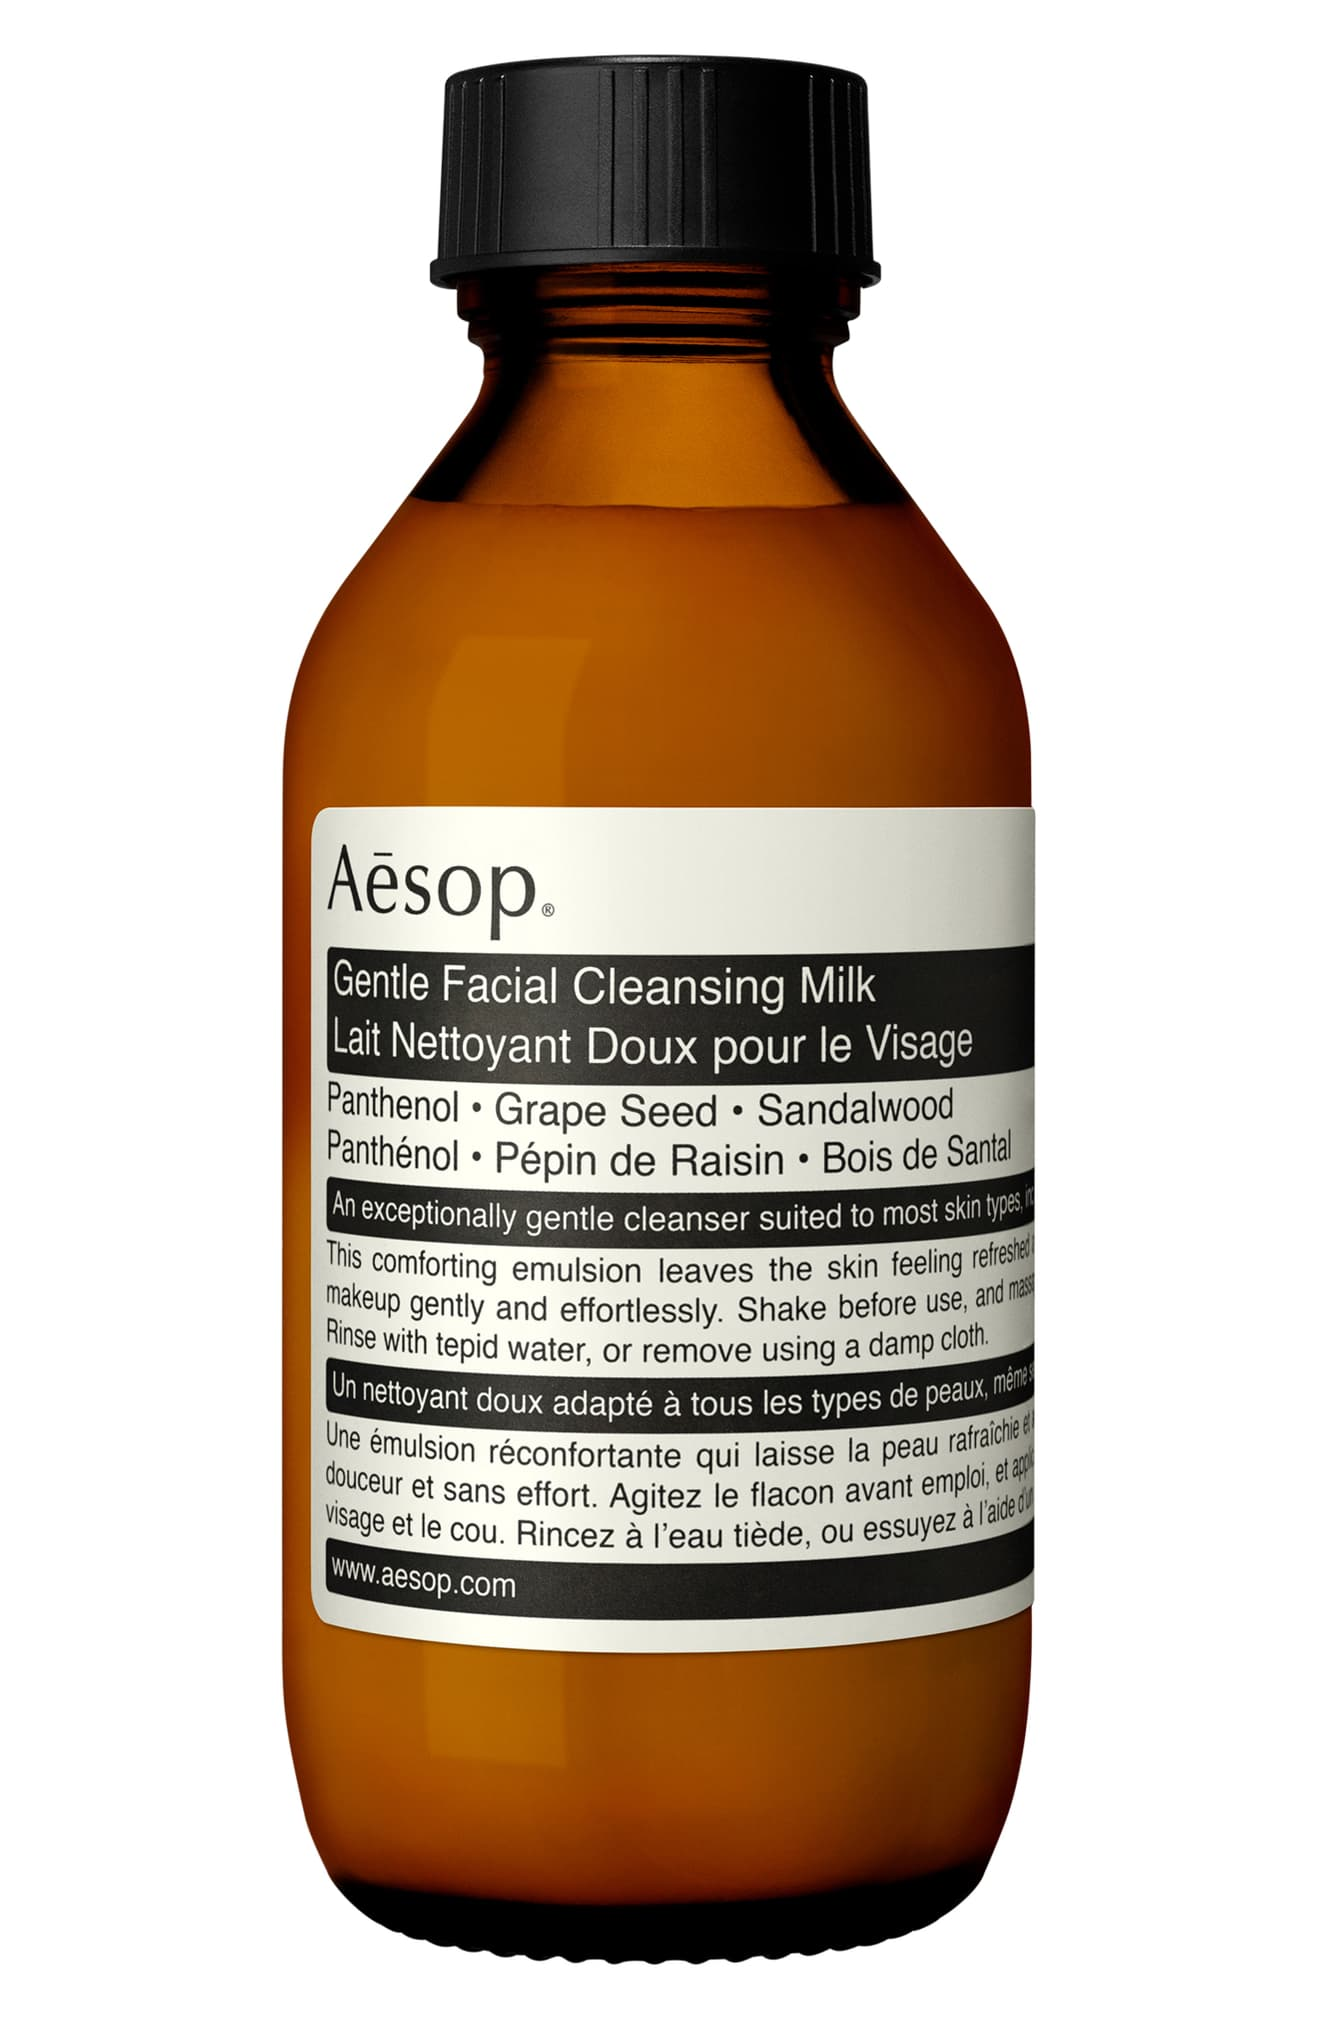 AESOP Gentle Facial Cleansing Milk